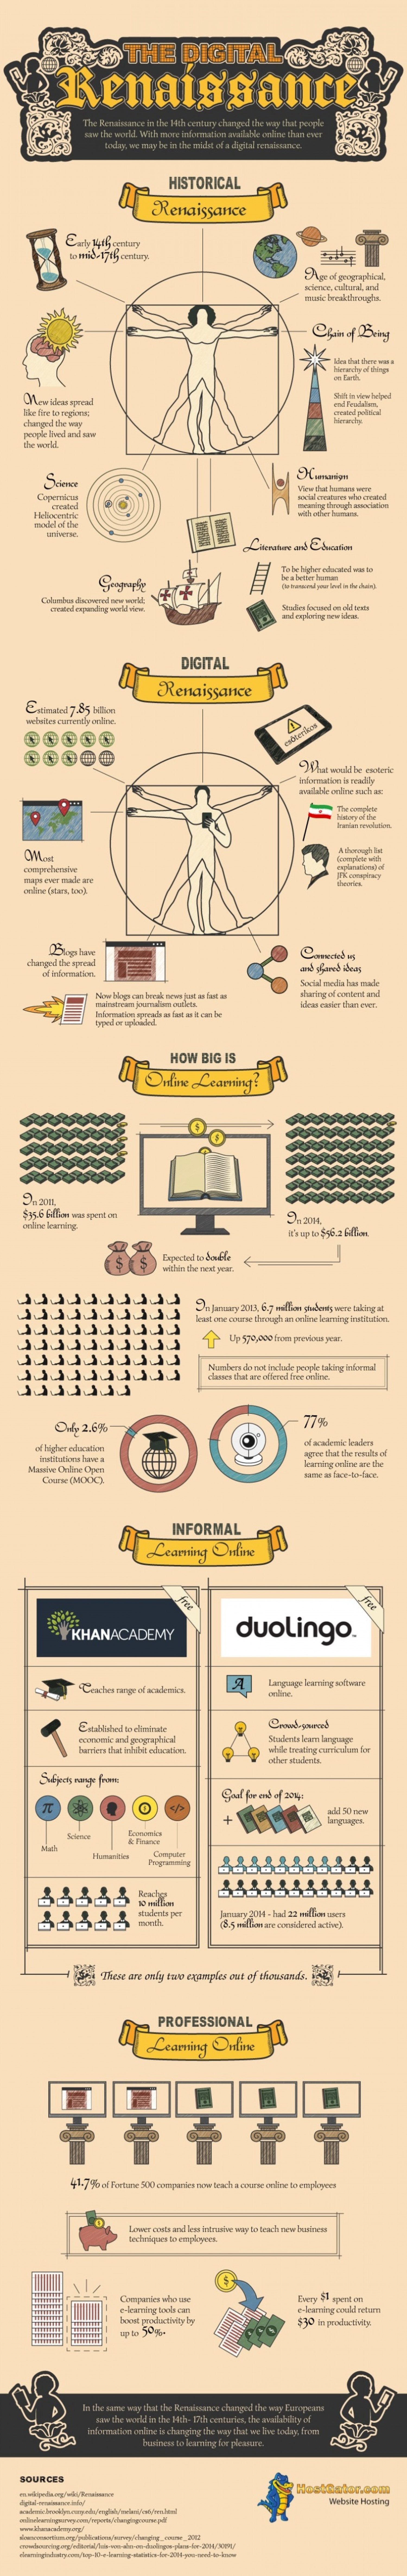 The Digital Renaissance  Infographic